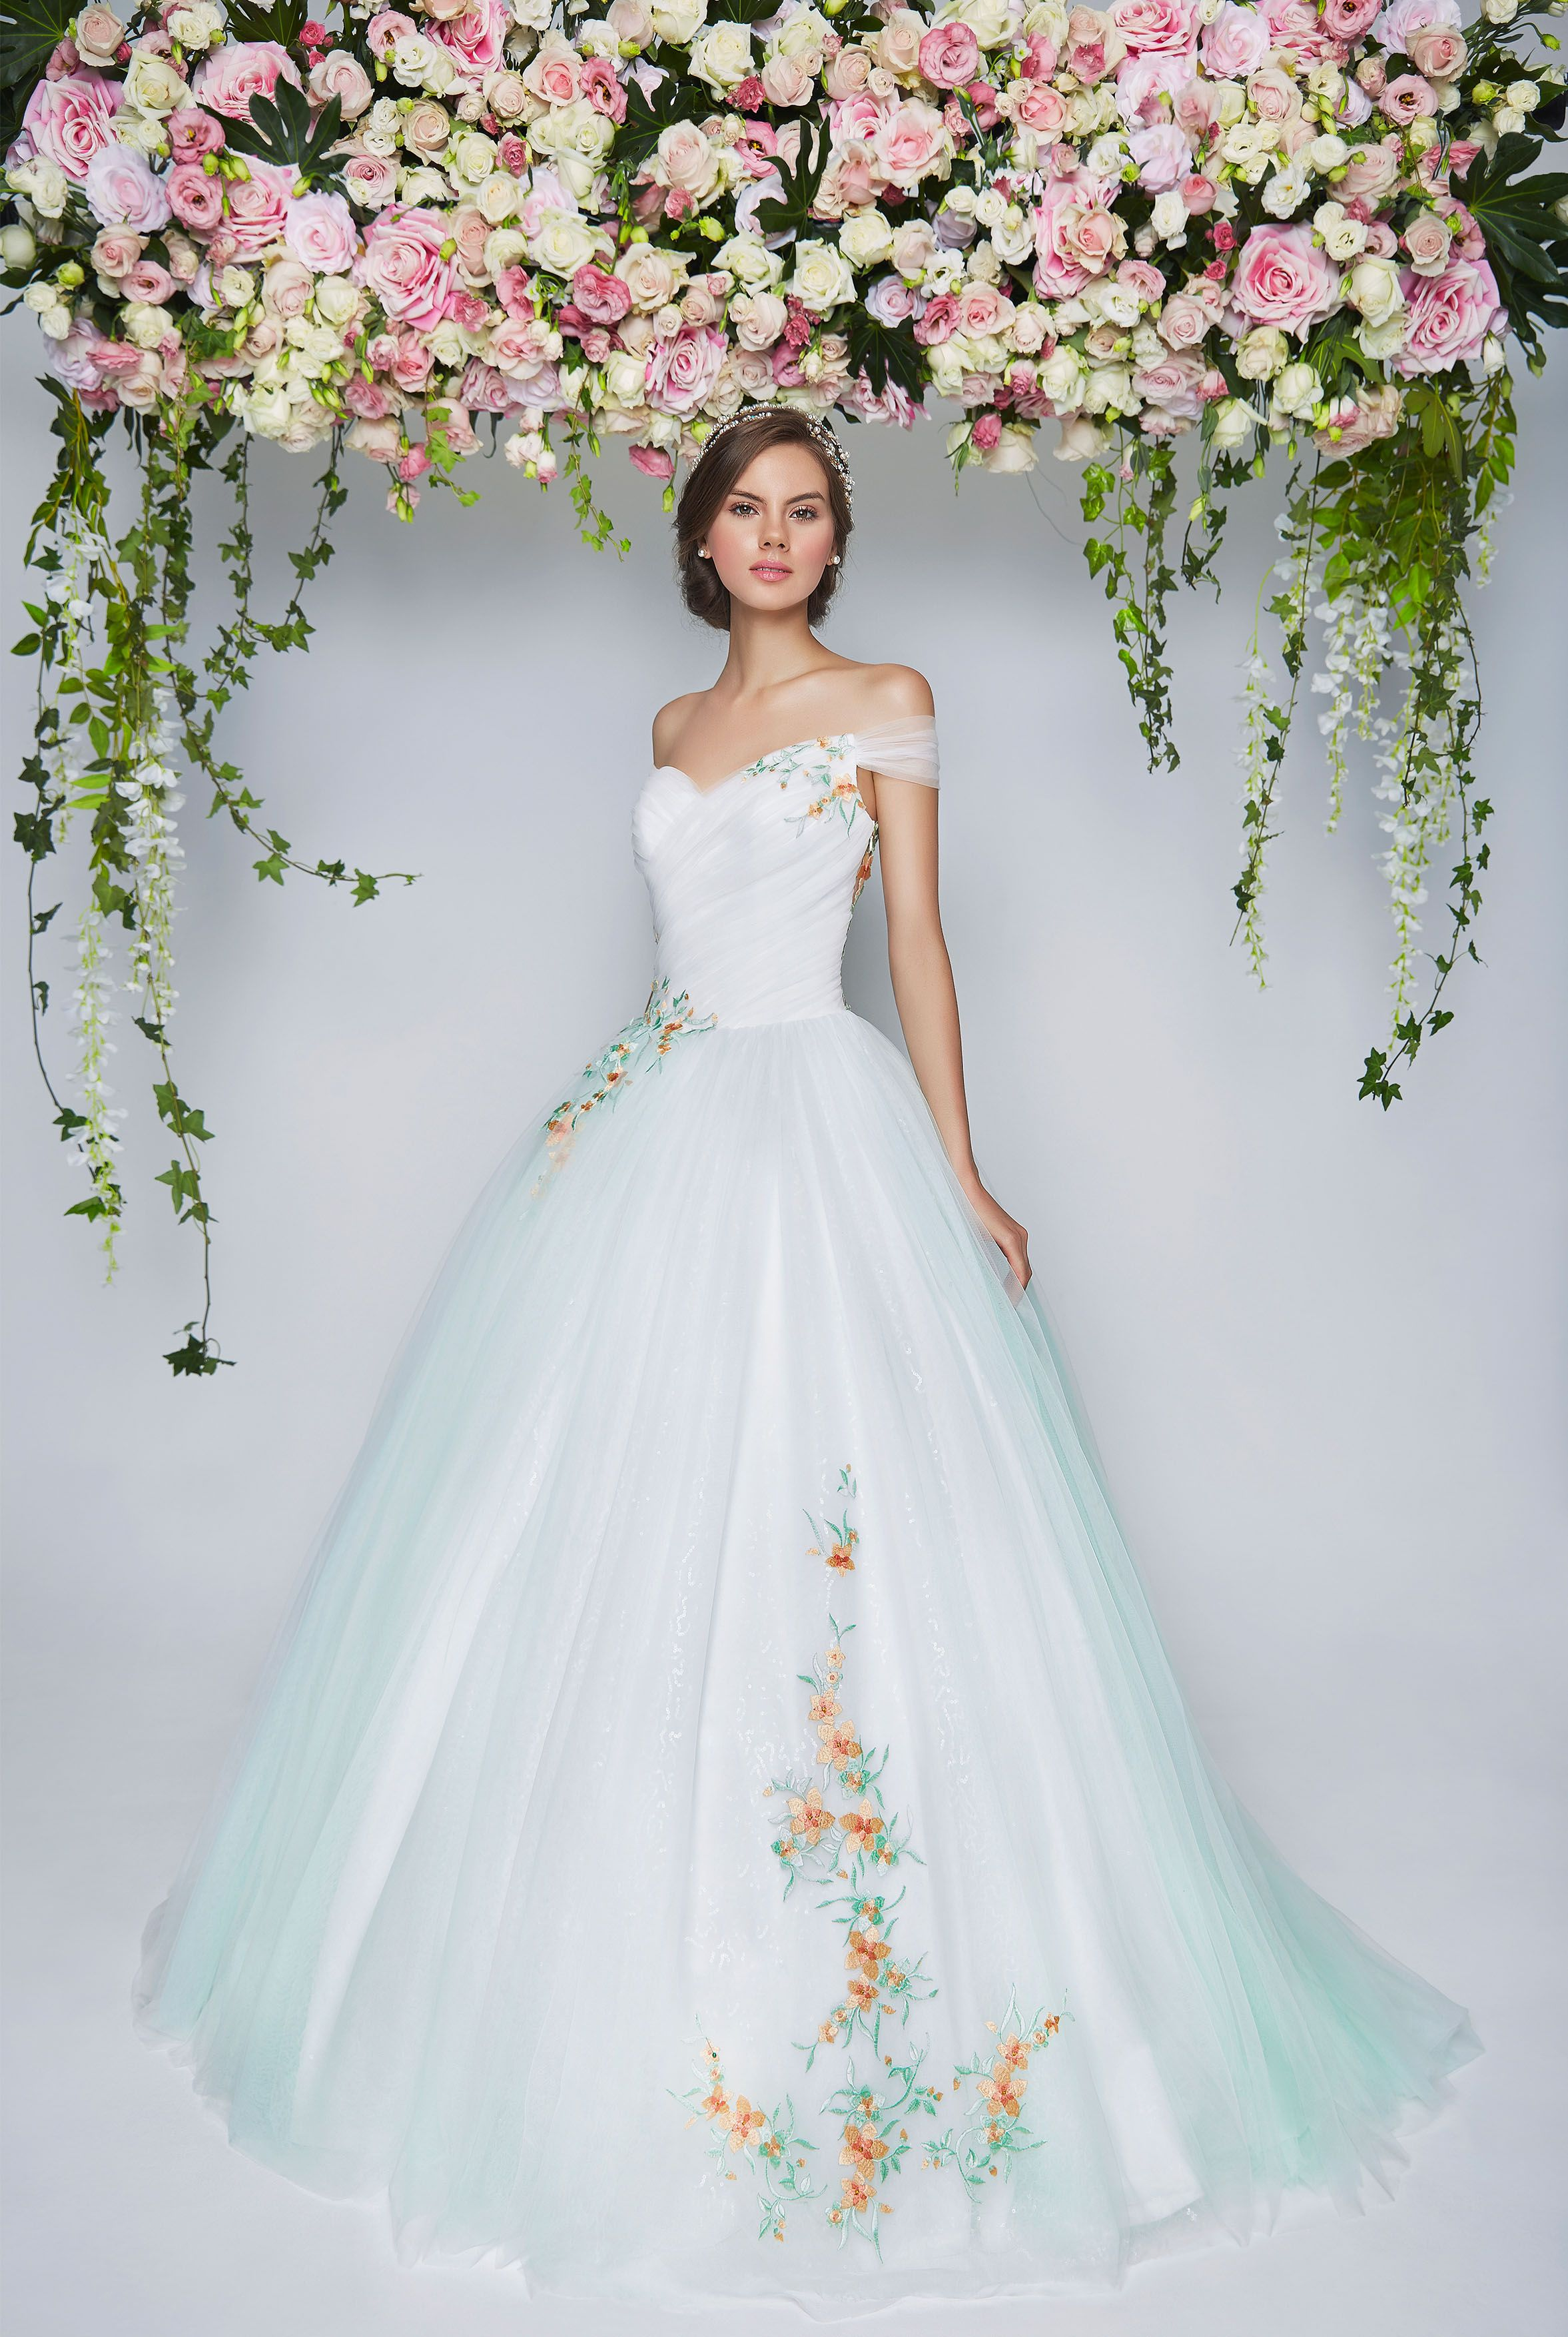 wedding gown rental Pretty in Floral Floral Wedding Dresses Bridal Boutique Singapore Wedding Gown